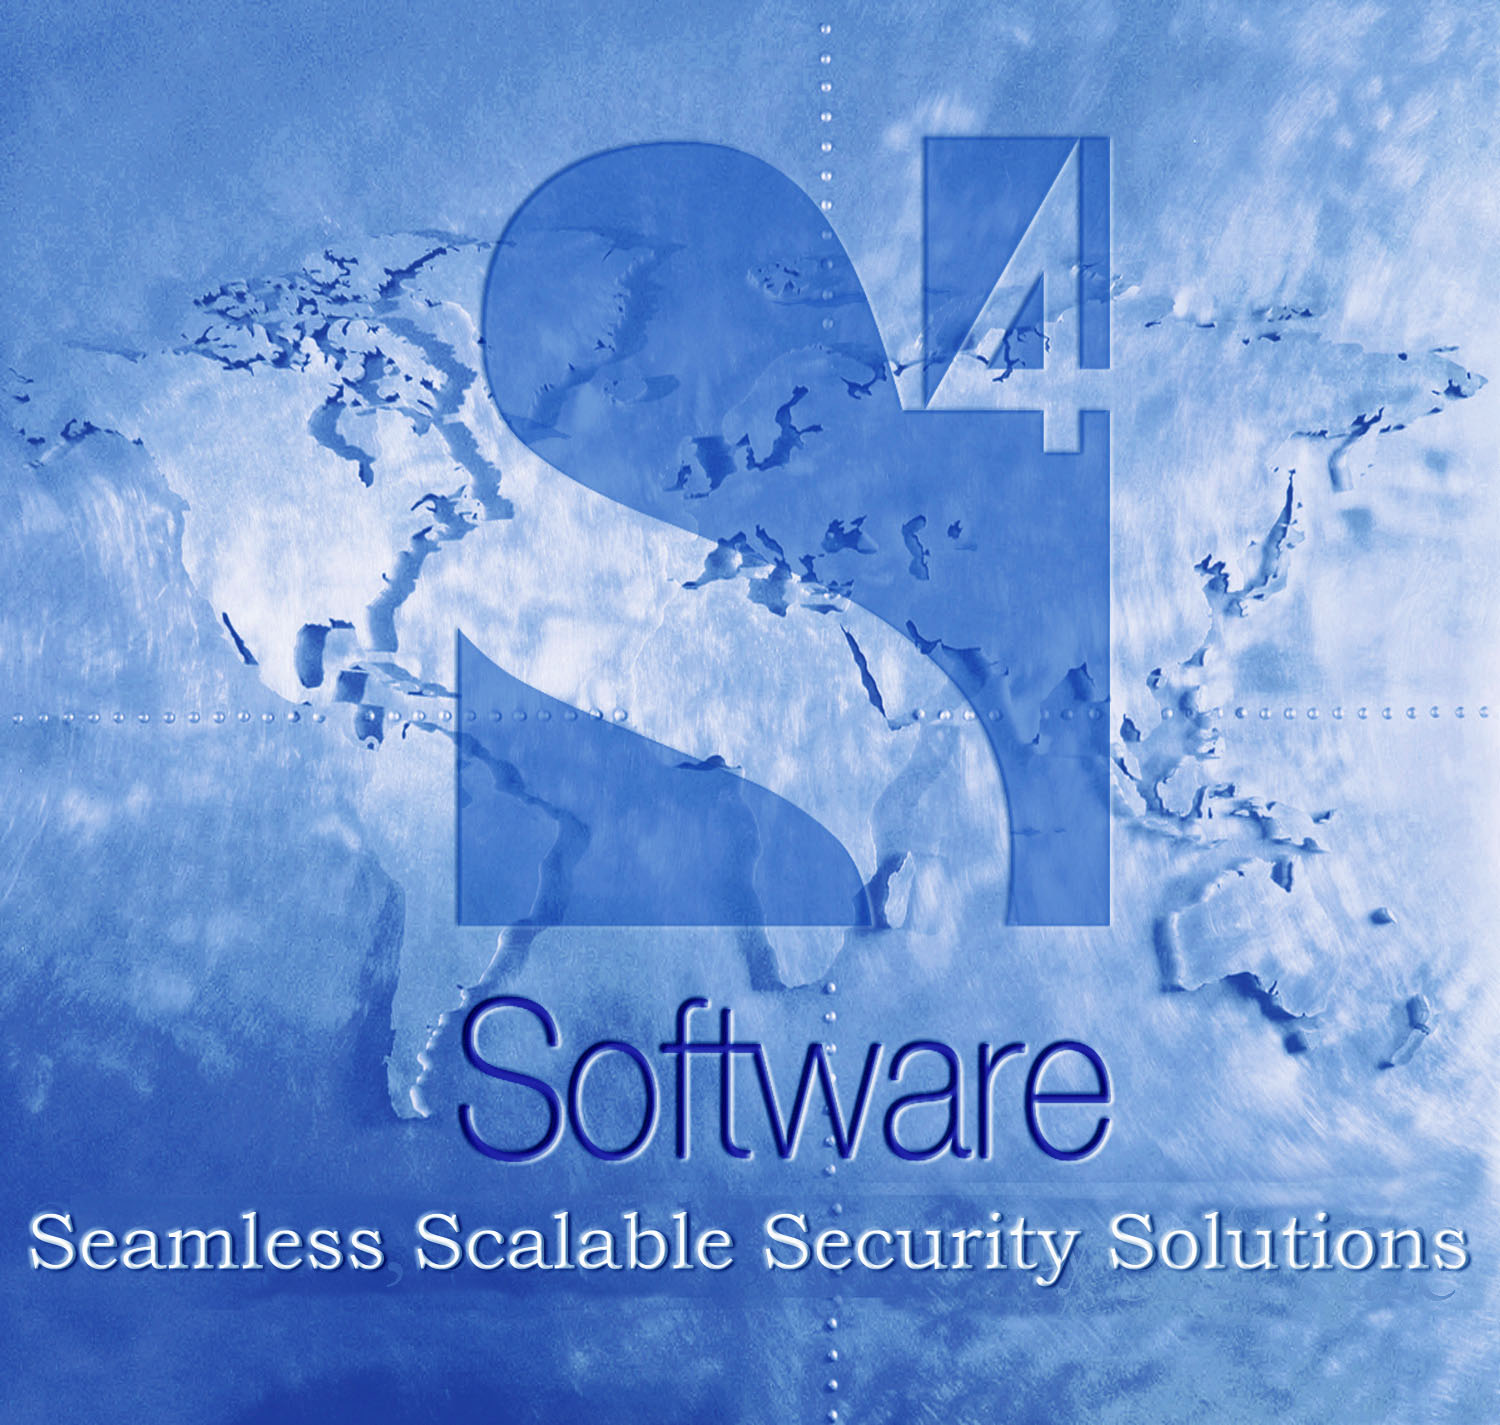 S4Software - System Security Management - The Power of 4